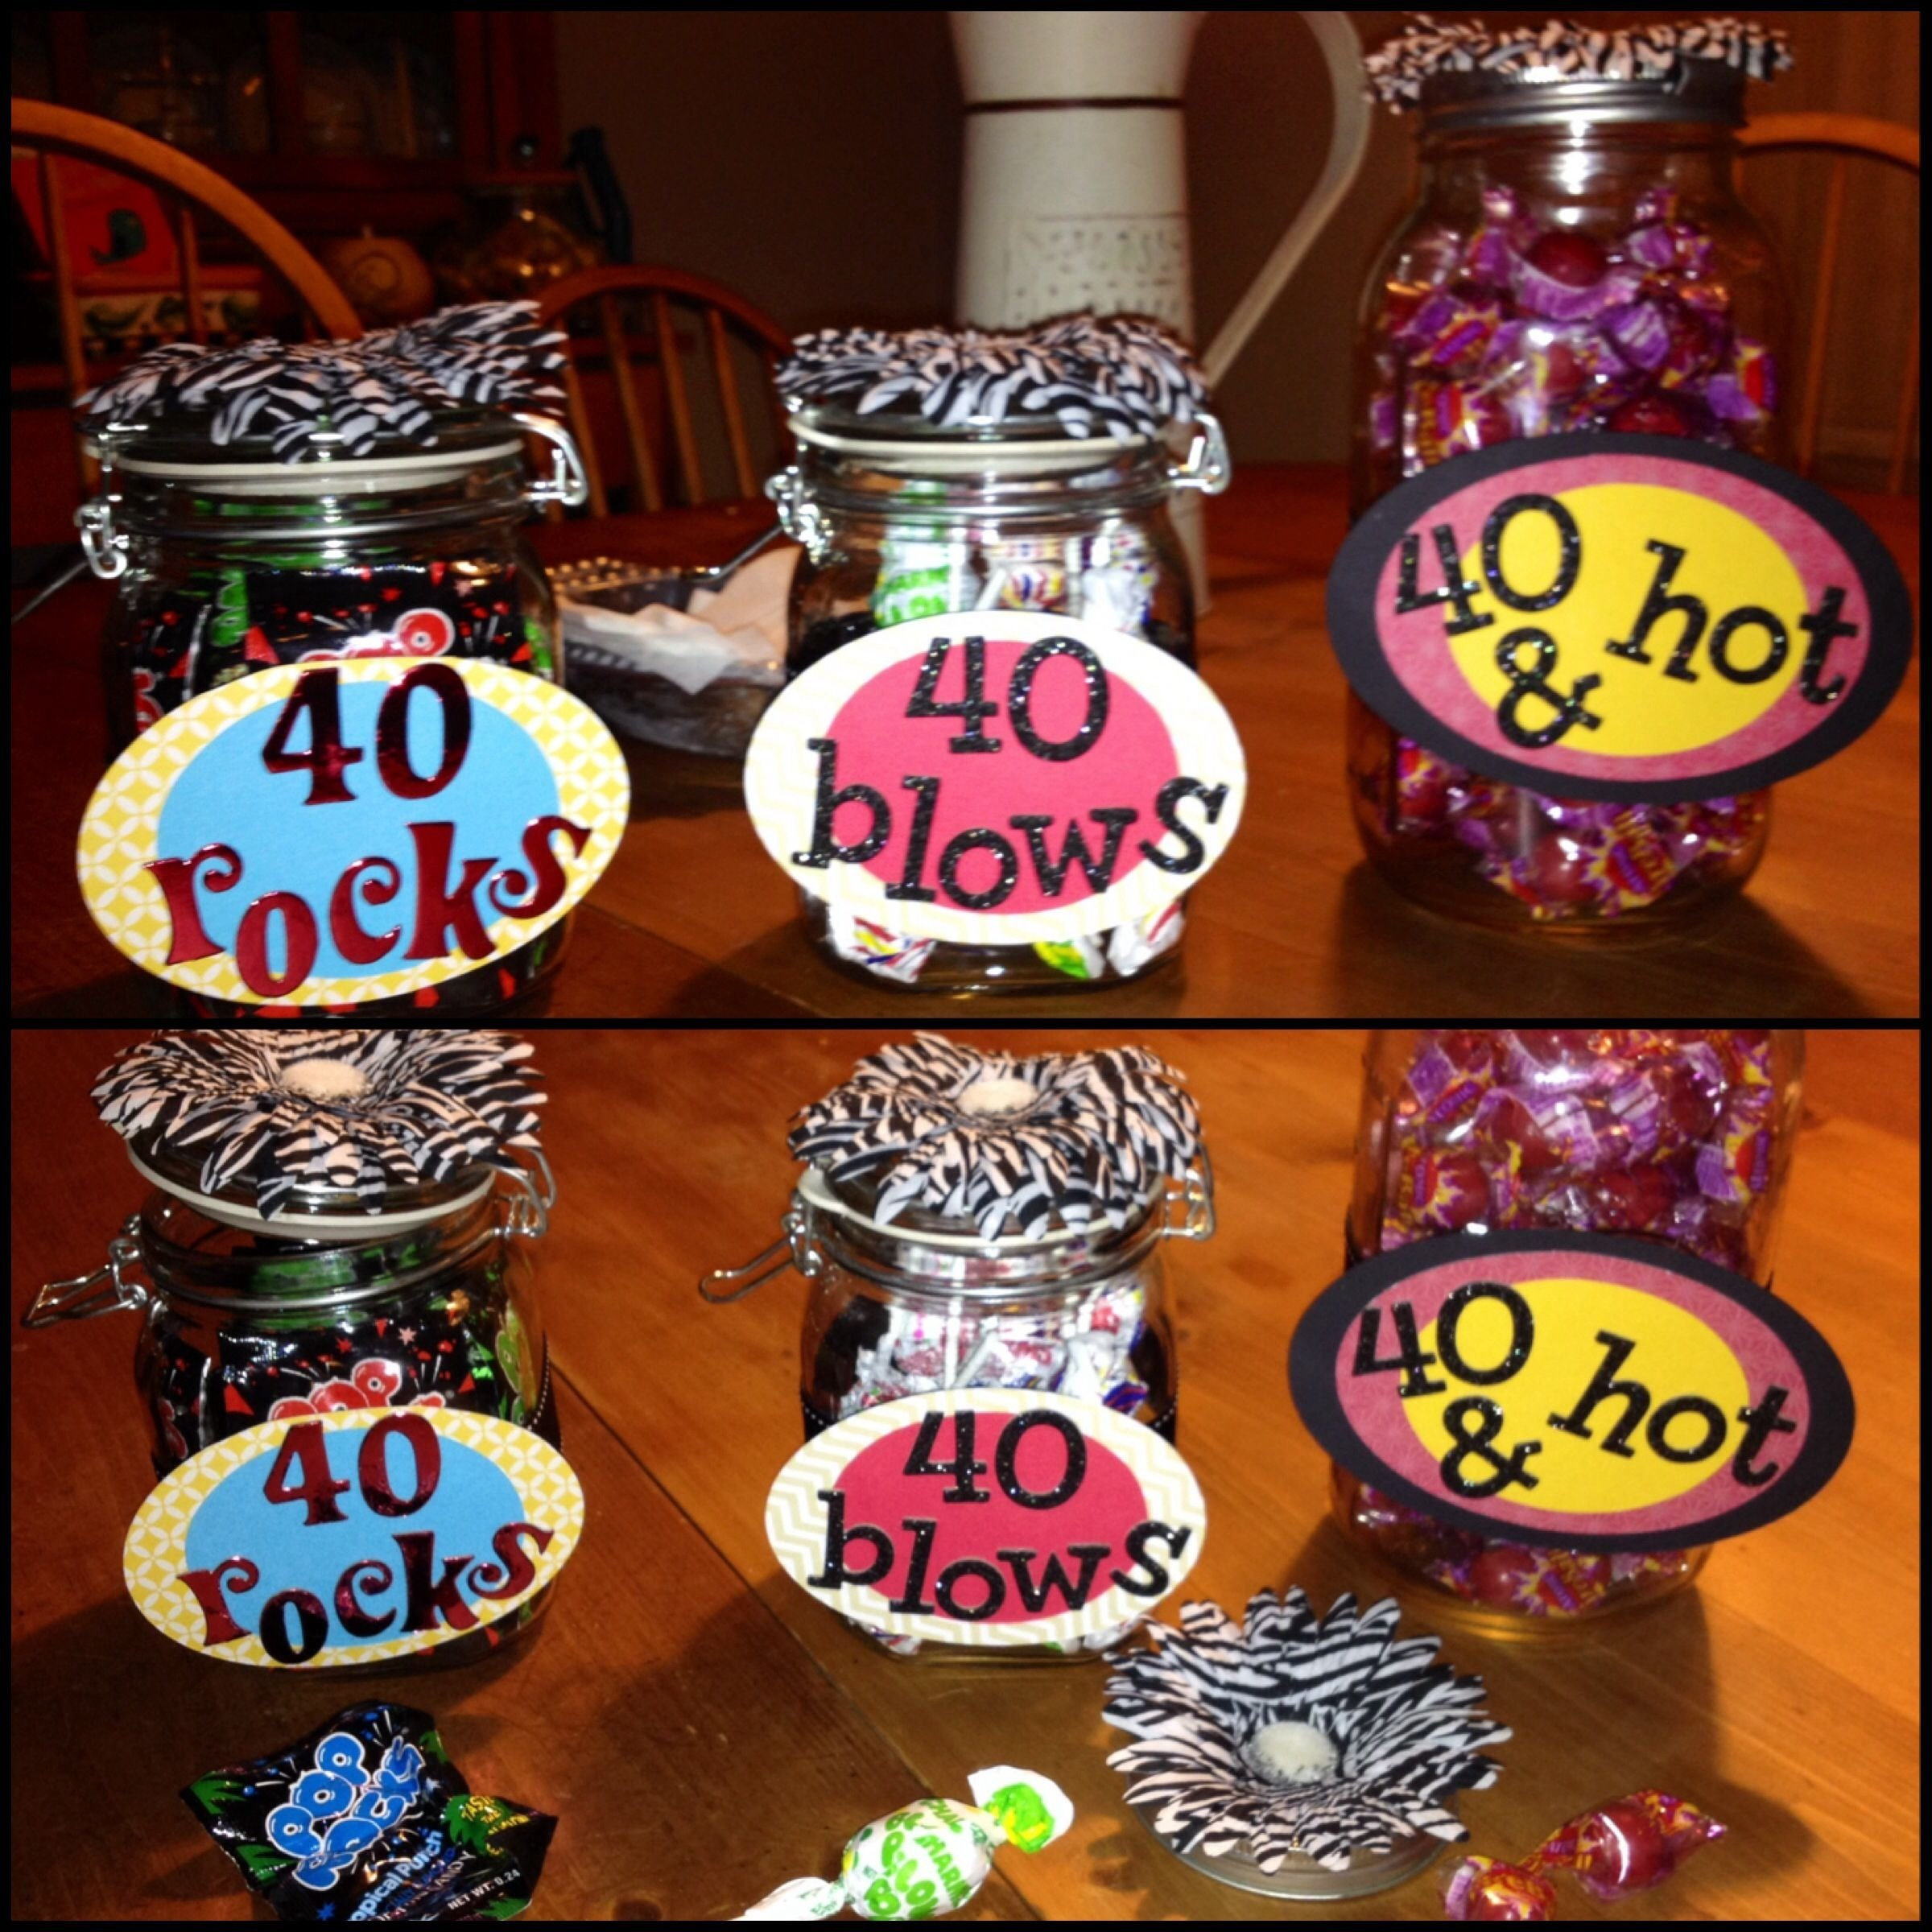 my latest 40th birthday party favors for a bff. 40 rocks---pop rocks